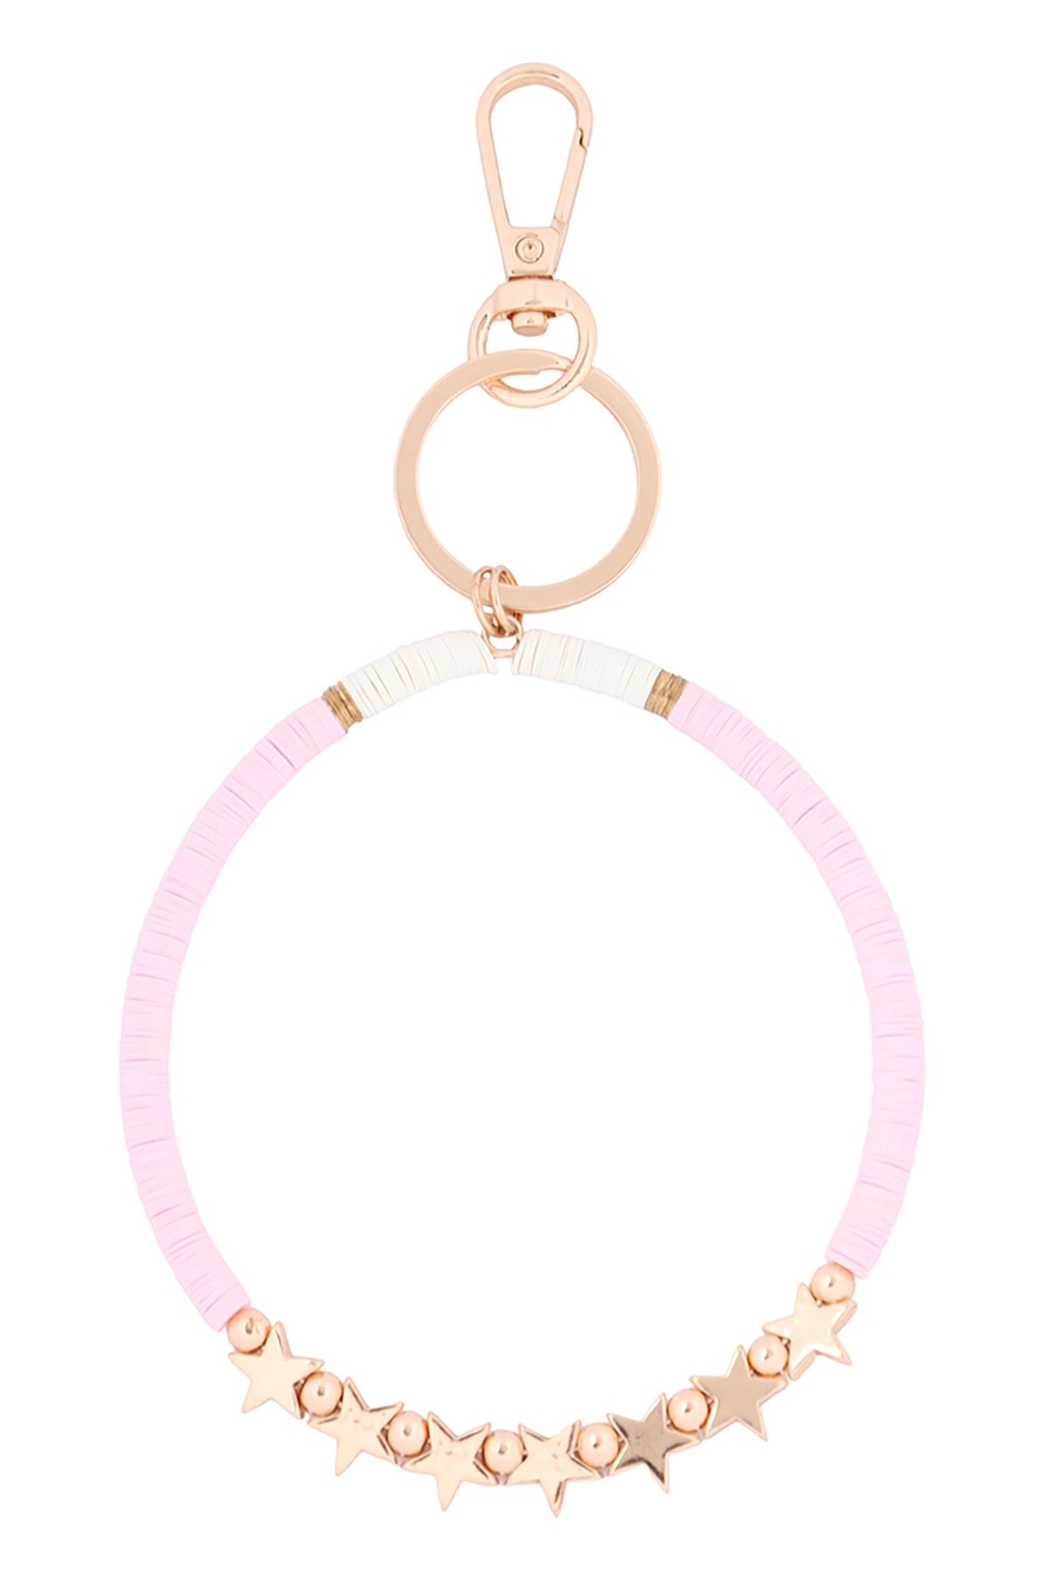 Riah Fashion Sequin-Beads-Star-Bracelet-Keychain - Front Cropped Image